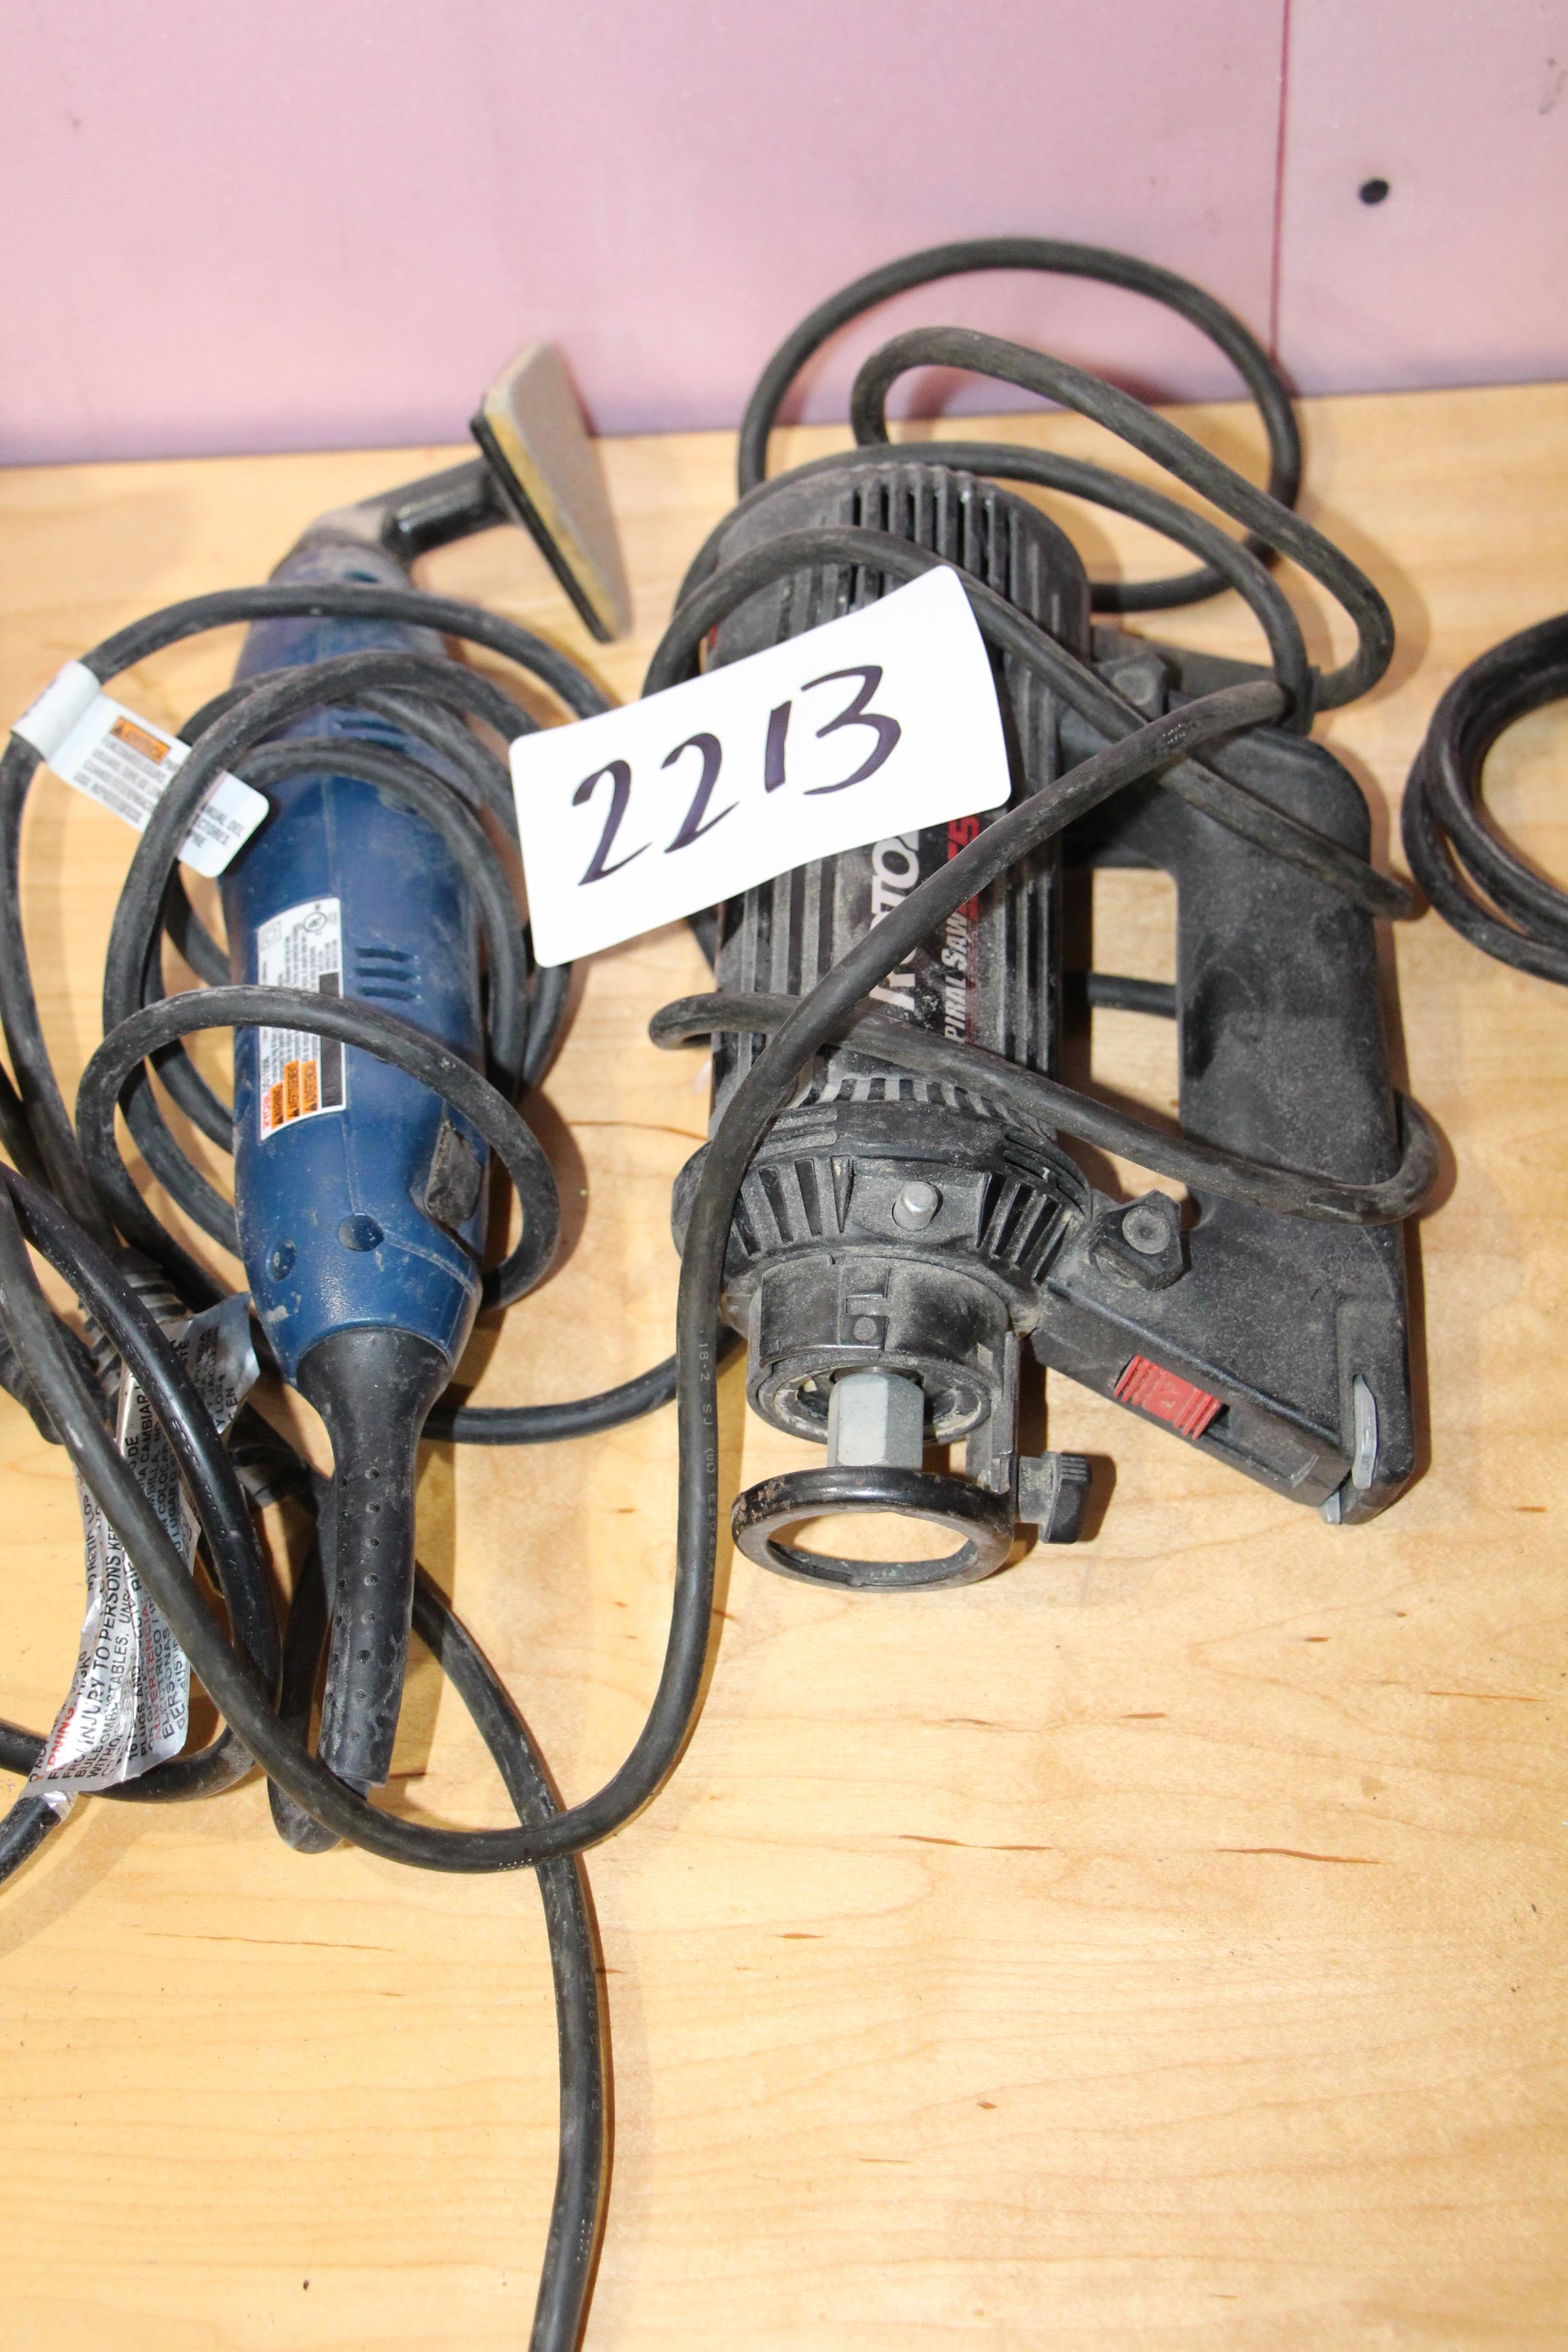 Lot 2213 - Lot Rotozip SCS01 spiral saw and Ryobi DS11008 detail sander